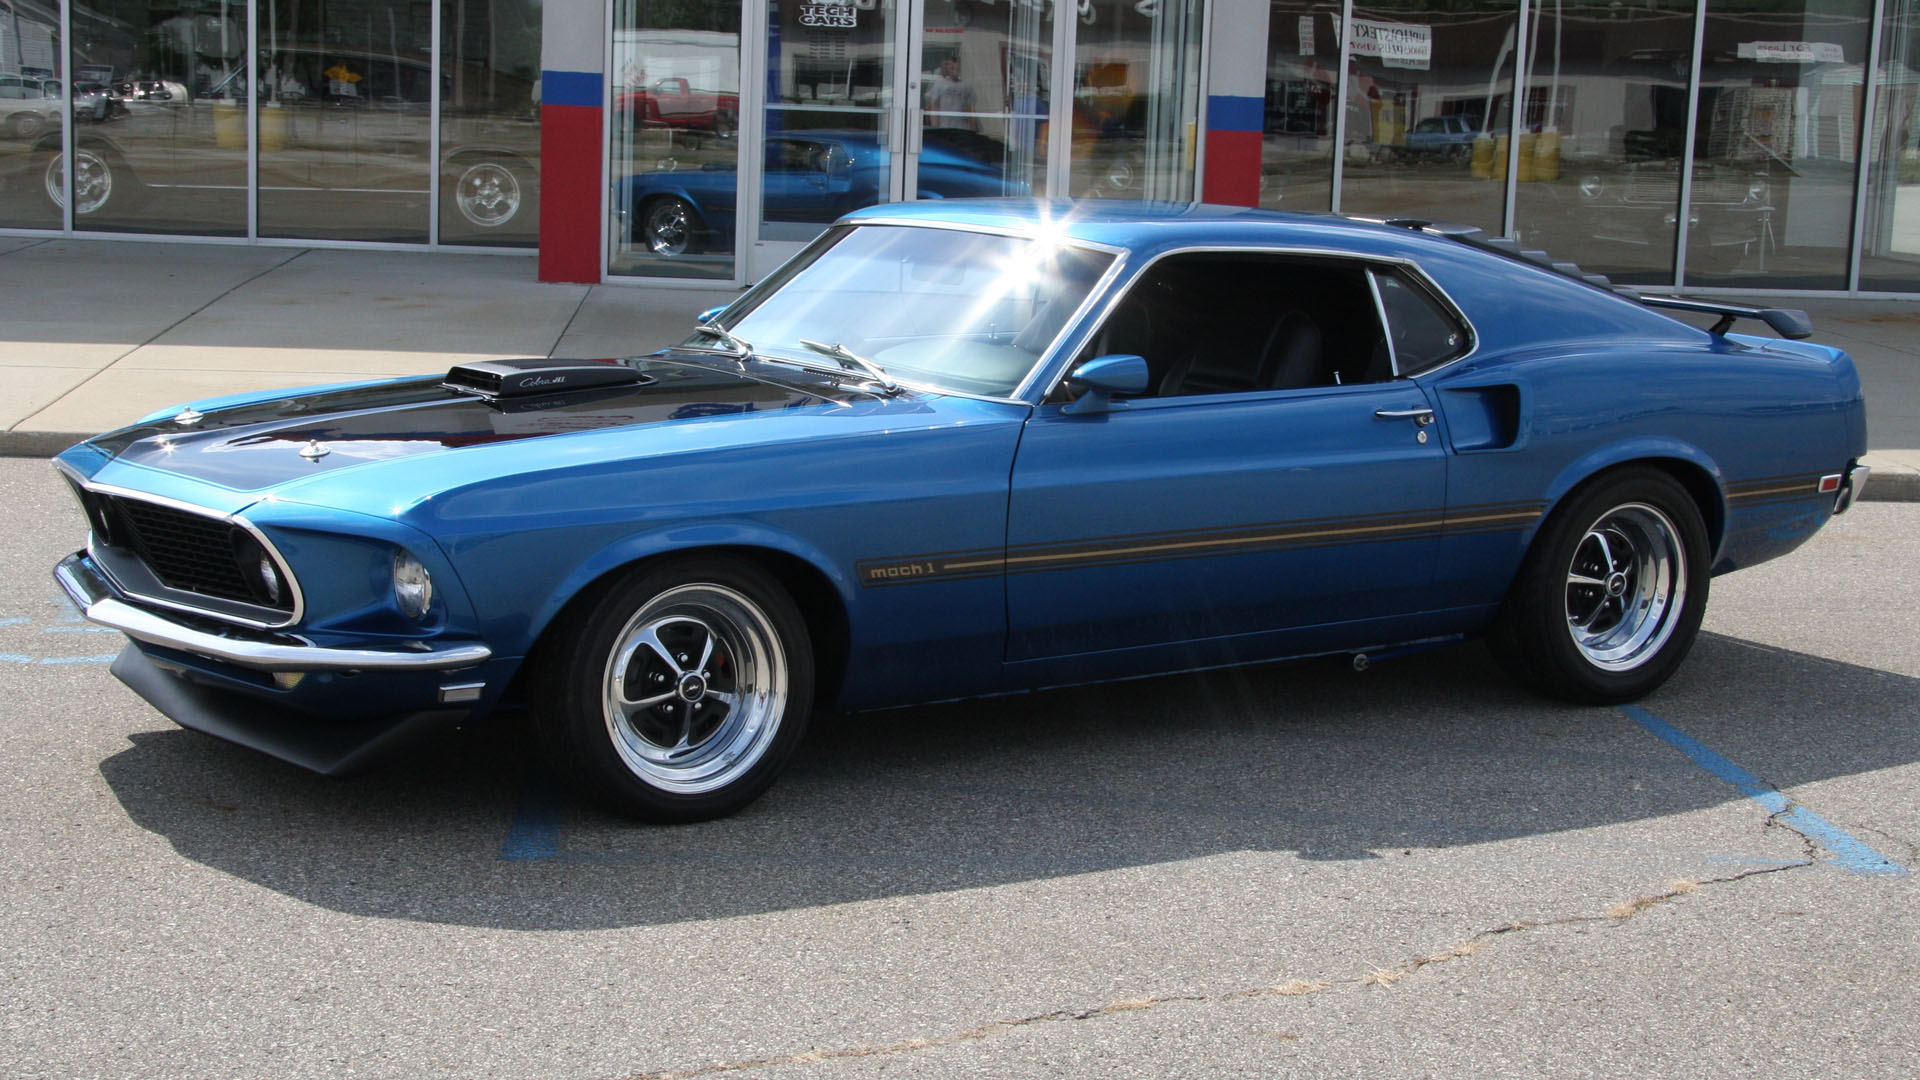 Ford Mustang Wallpaper Gallery Free Download